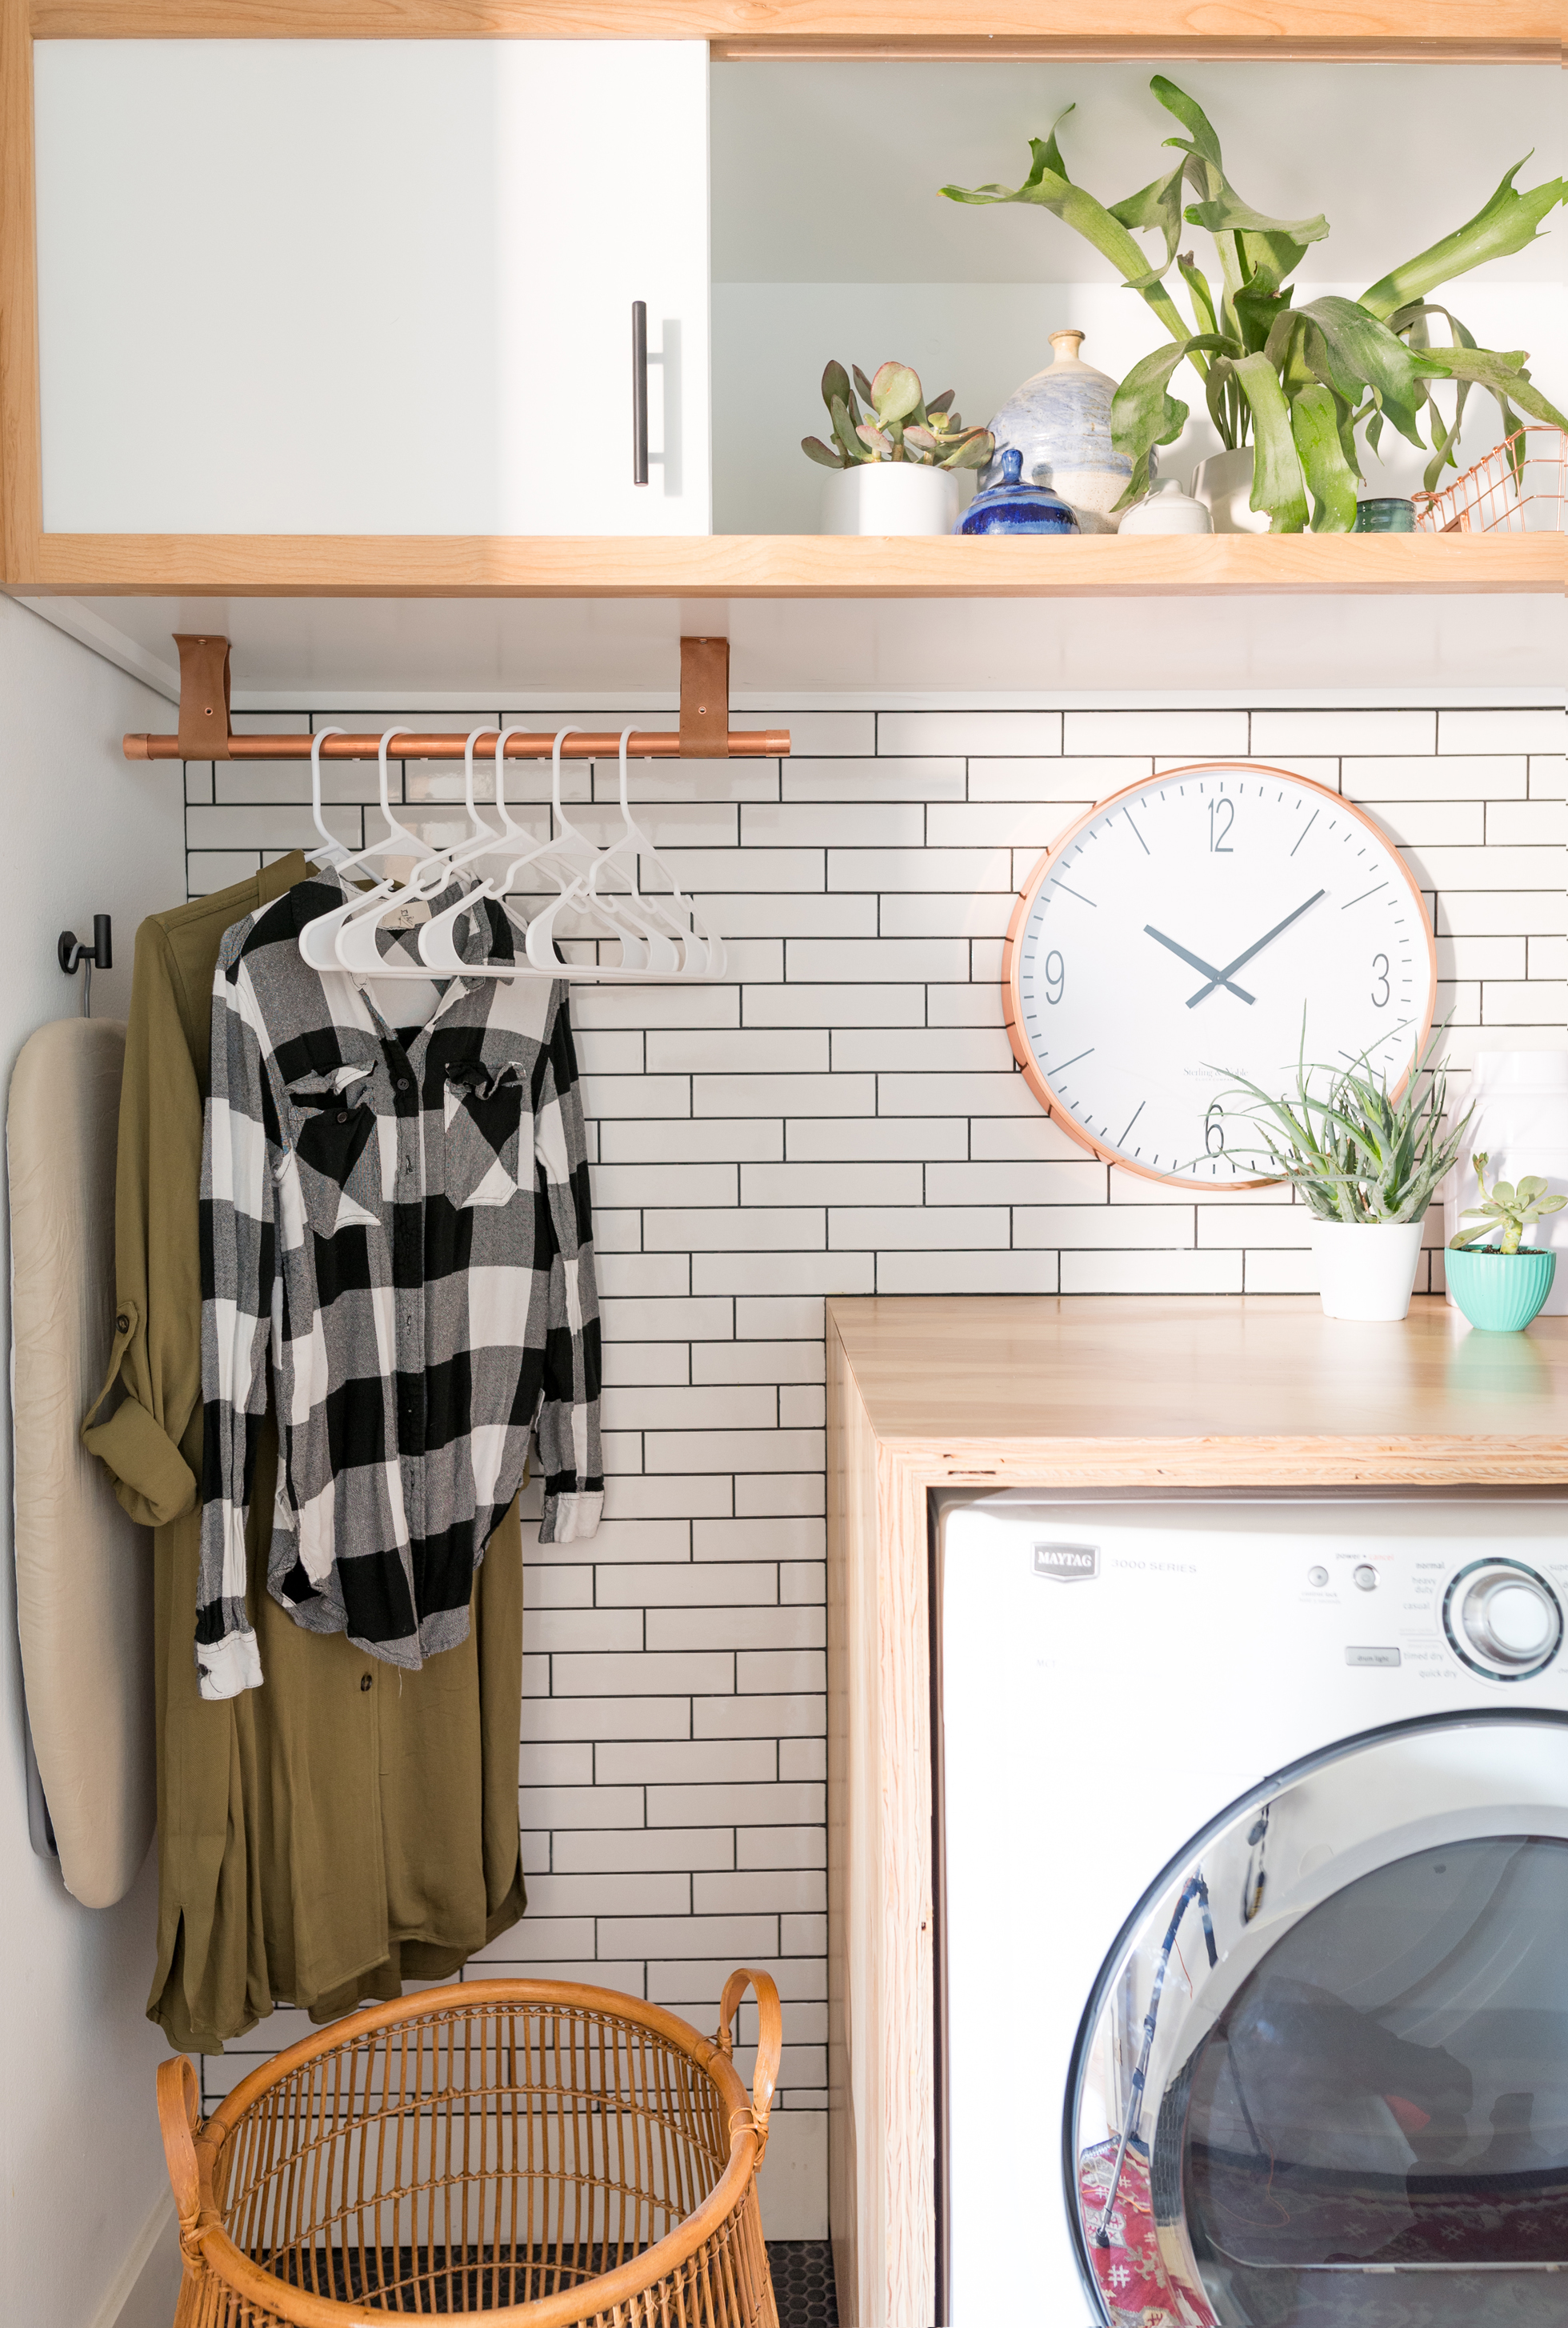 Subway tile used in a laundry room